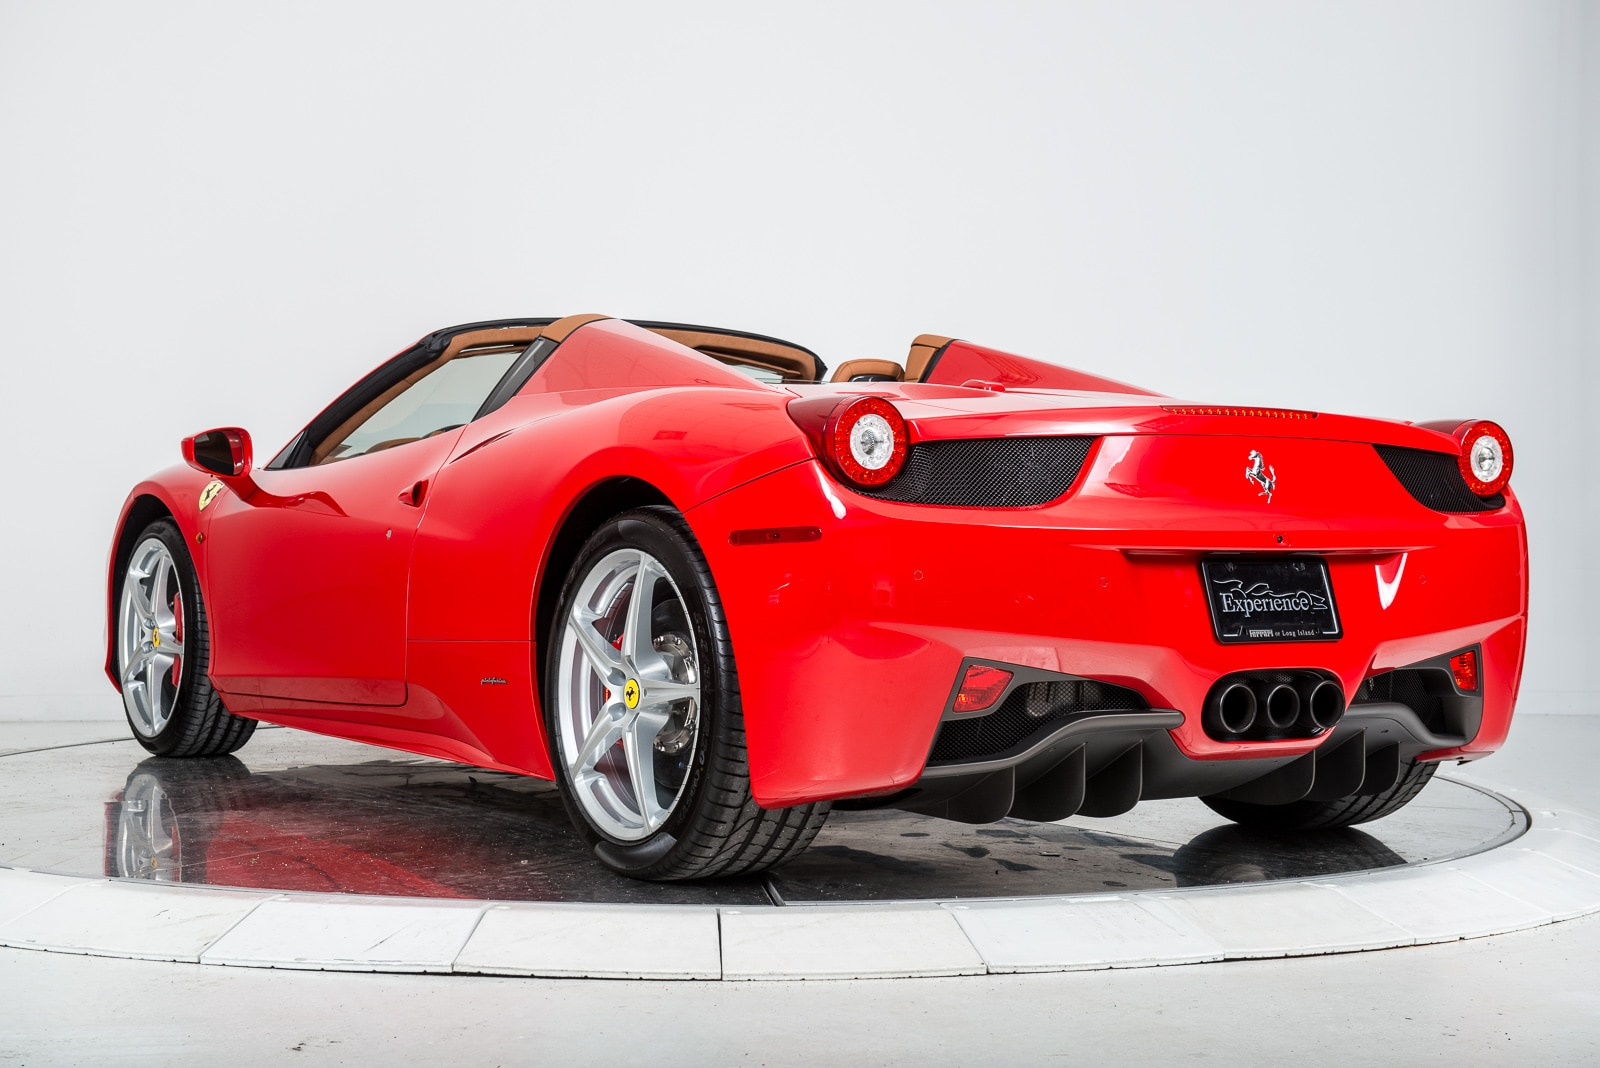 used 2015 ferrari 458 spider for sale plainview near long island ny vin zff68nha3f0207991. Black Bedroom Furniture Sets. Home Design Ideas